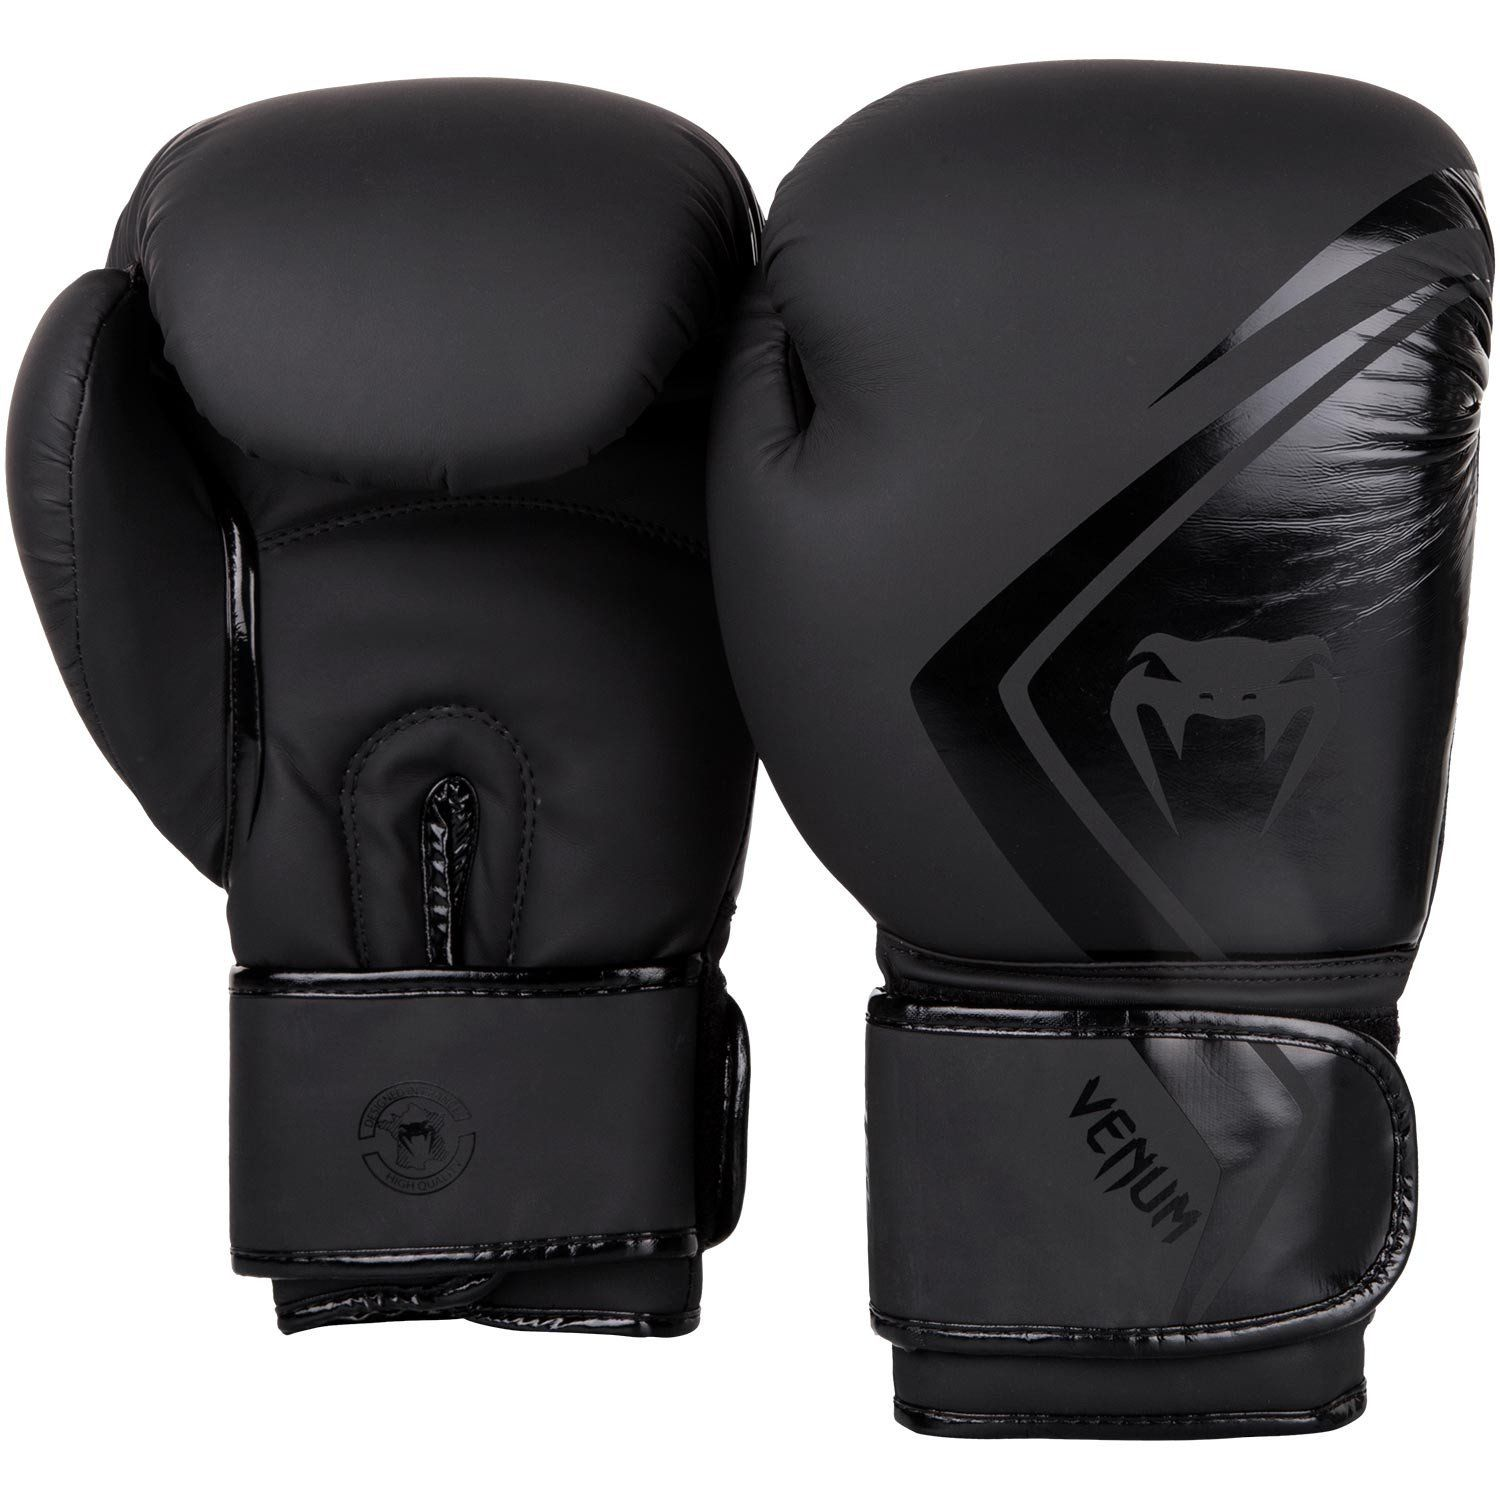 Venum Boxing Gloves Contender 2.0 - Black/Black